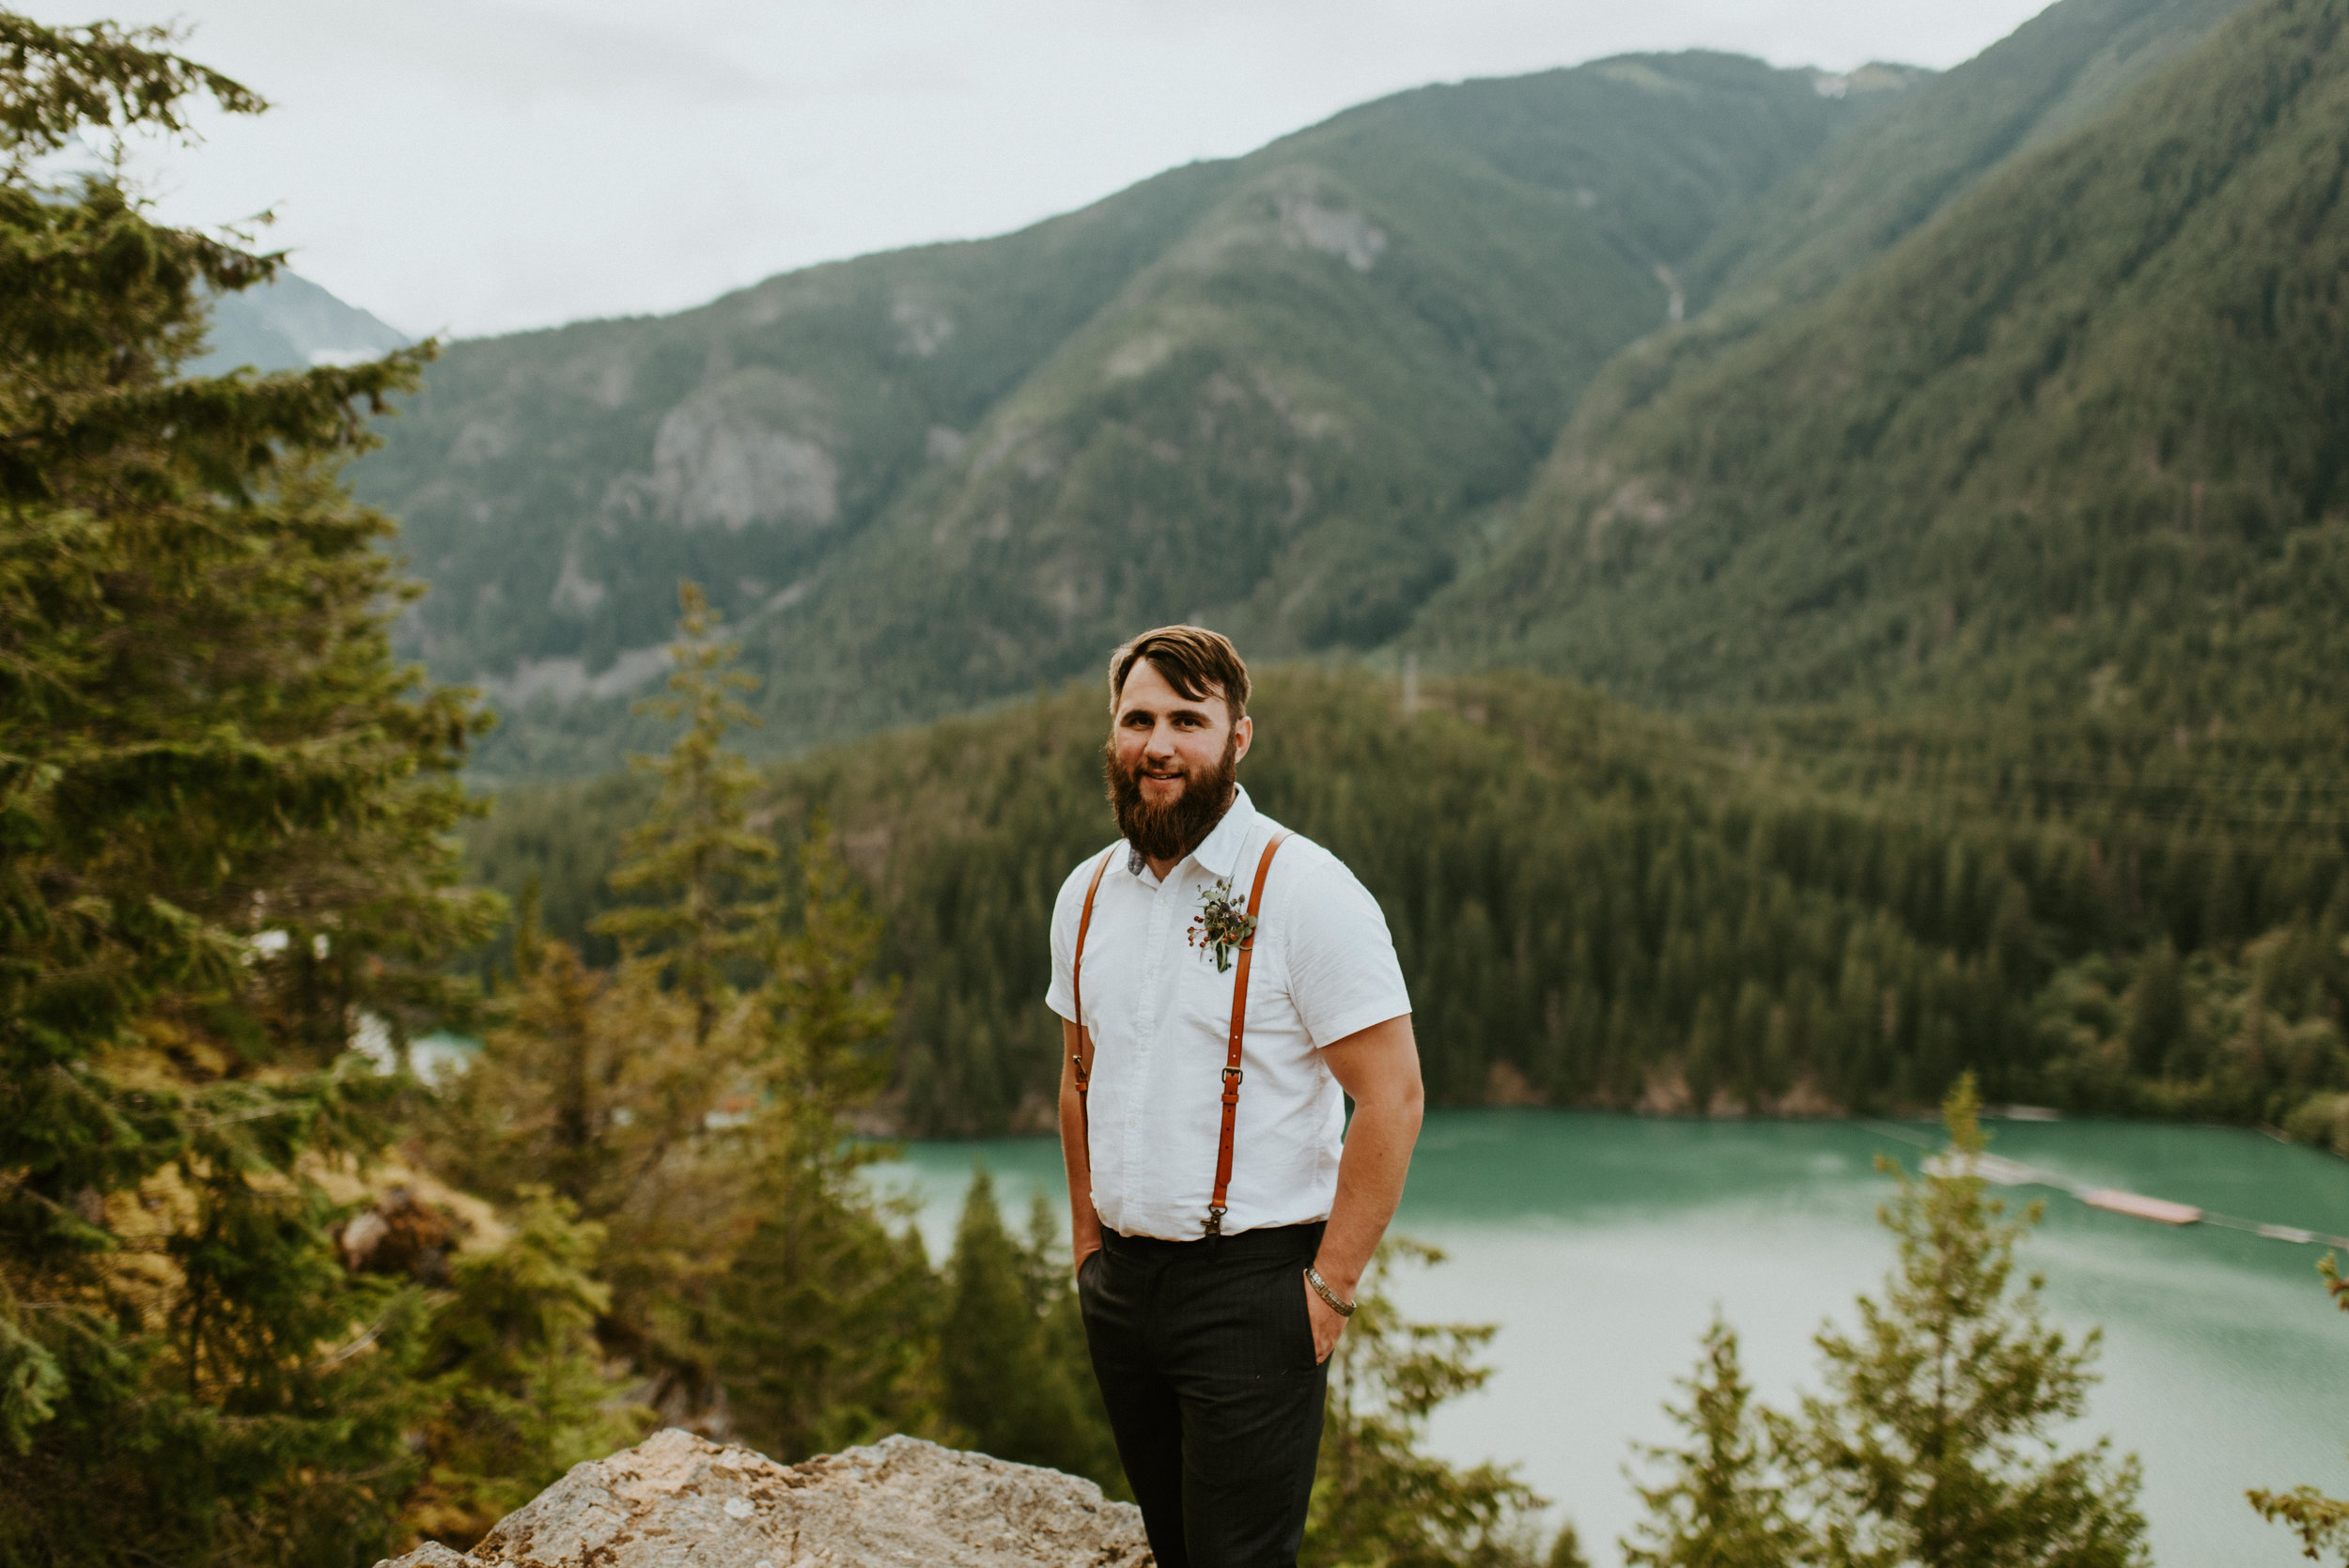 Kelsea + Perry - Diablo Lake Elopement - Kamra Fuller Photography - Seattle Elopement Photographer - North Cascades Elopement Photographer - Mt. Baker Wedding Photographerv